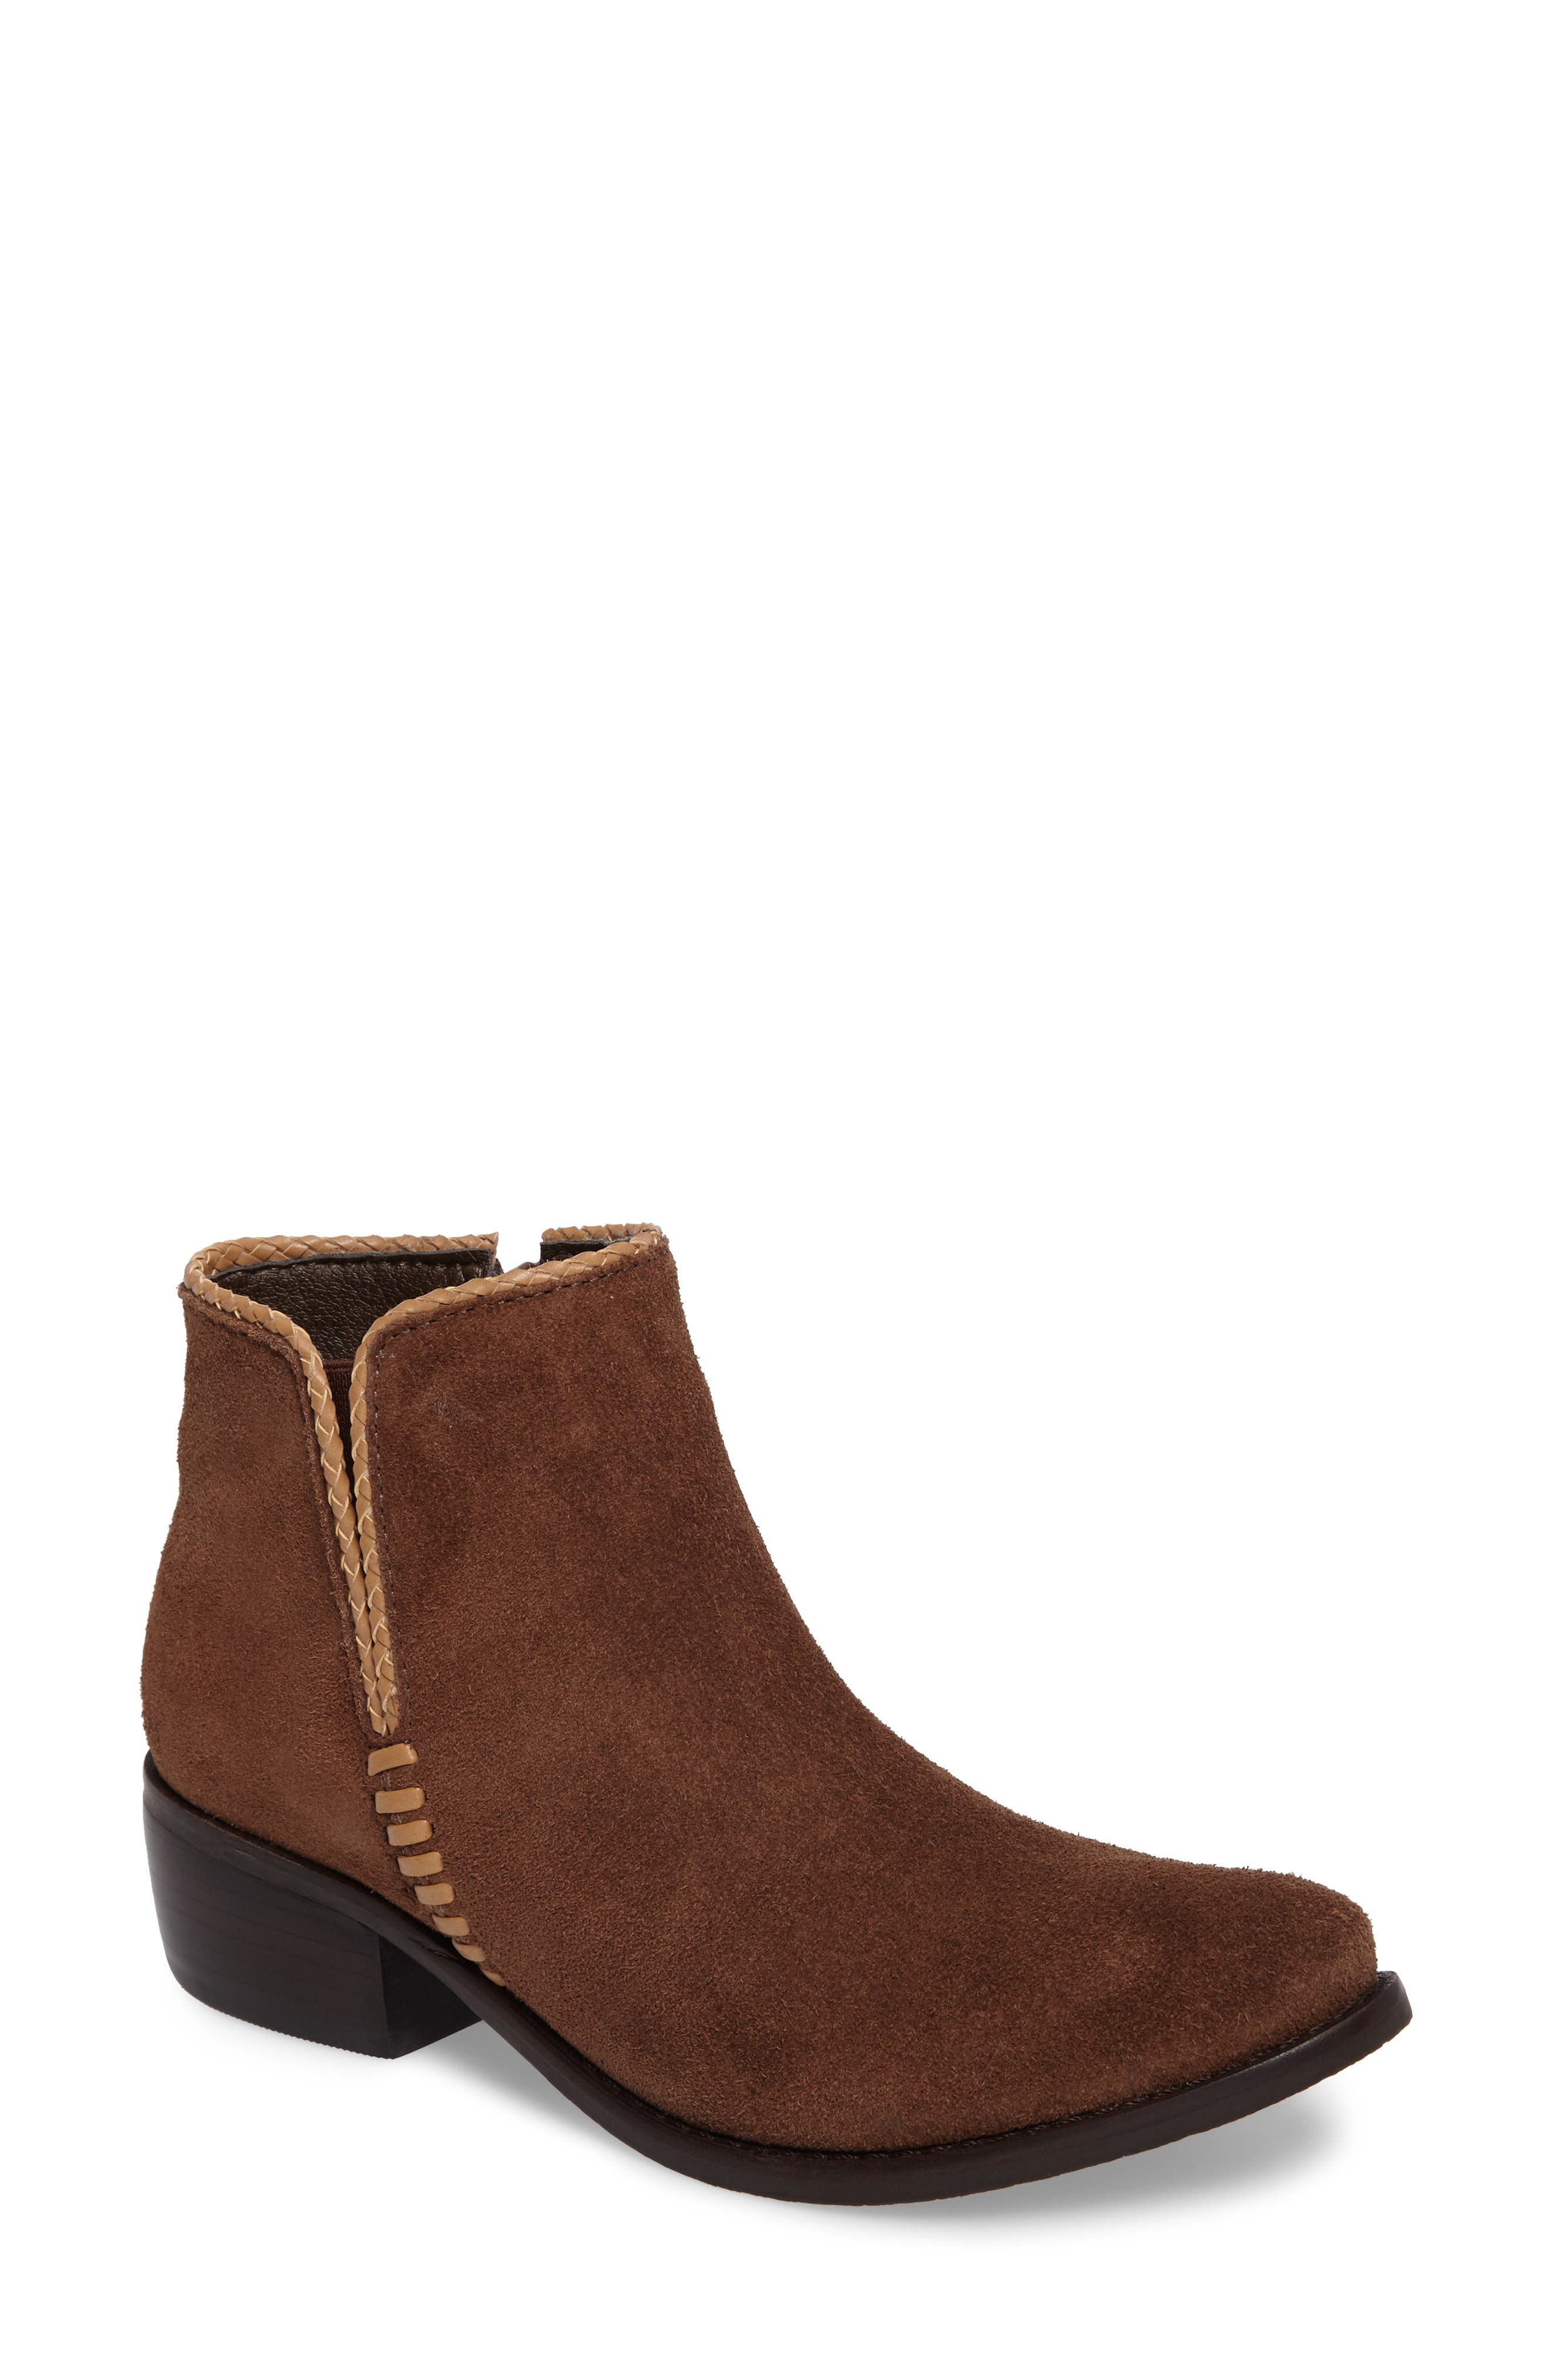 Merge Mid Top Bootie,                             Main thumbnail 2, color,